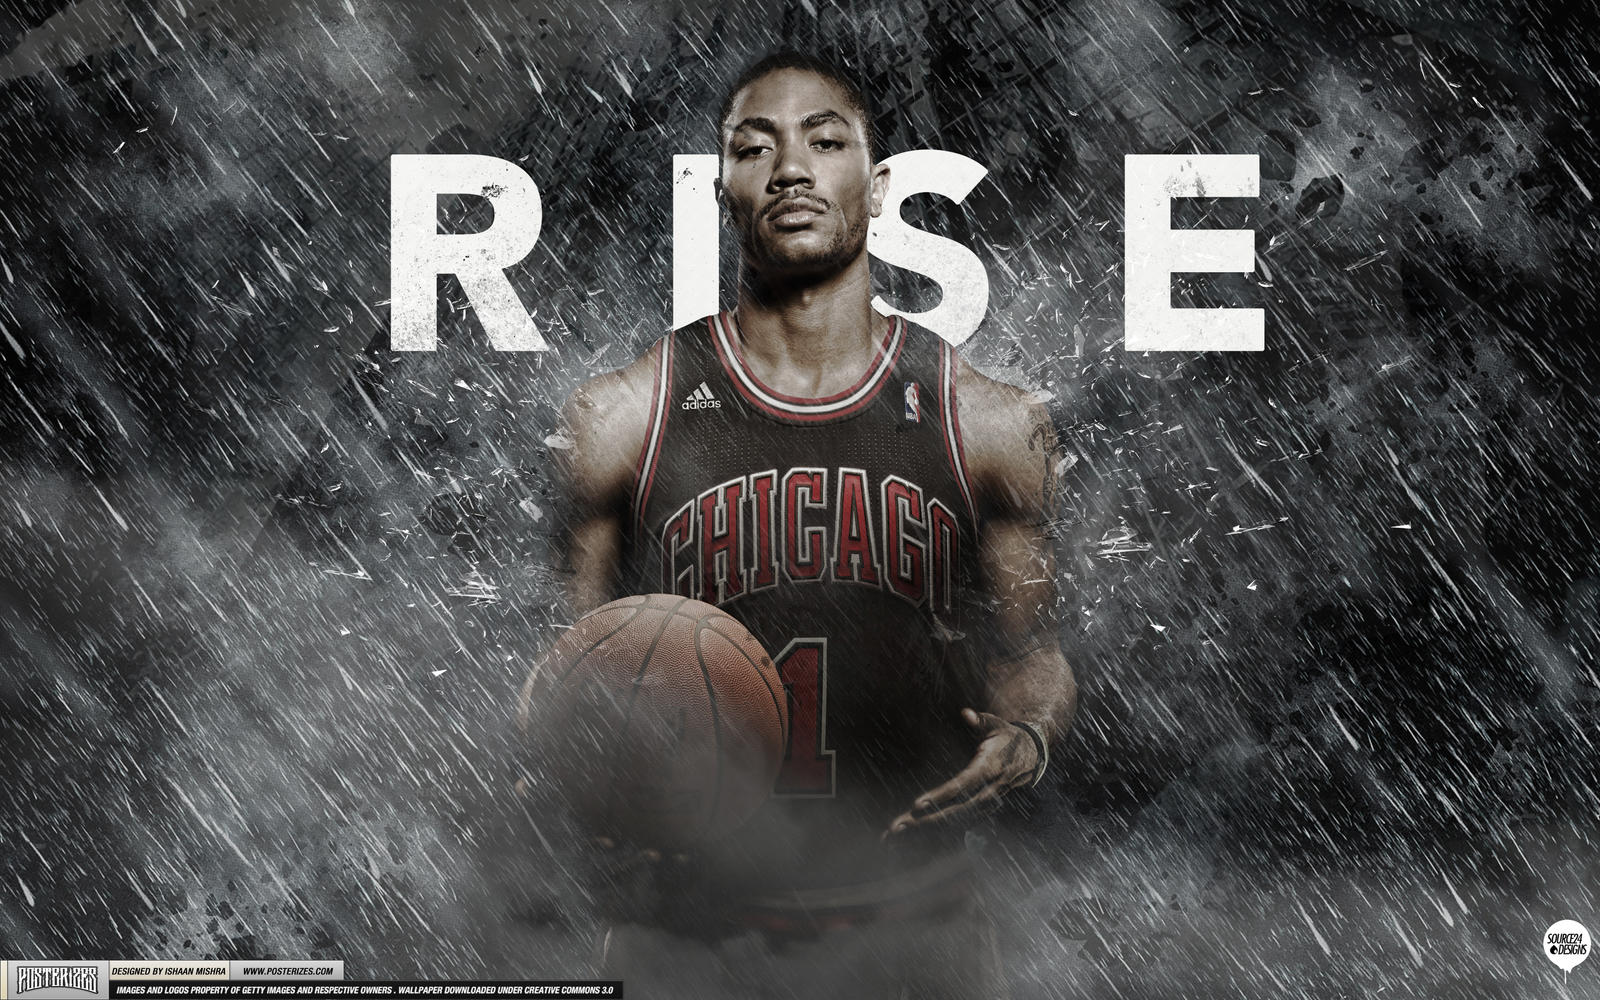 Derrick rose rise wallpaper by ishaanmishra on deviantart derrick rose rise wallpaper by ishaanmishra derrick rose rise wallpaper by ishaanmishra voltagebd Image collections